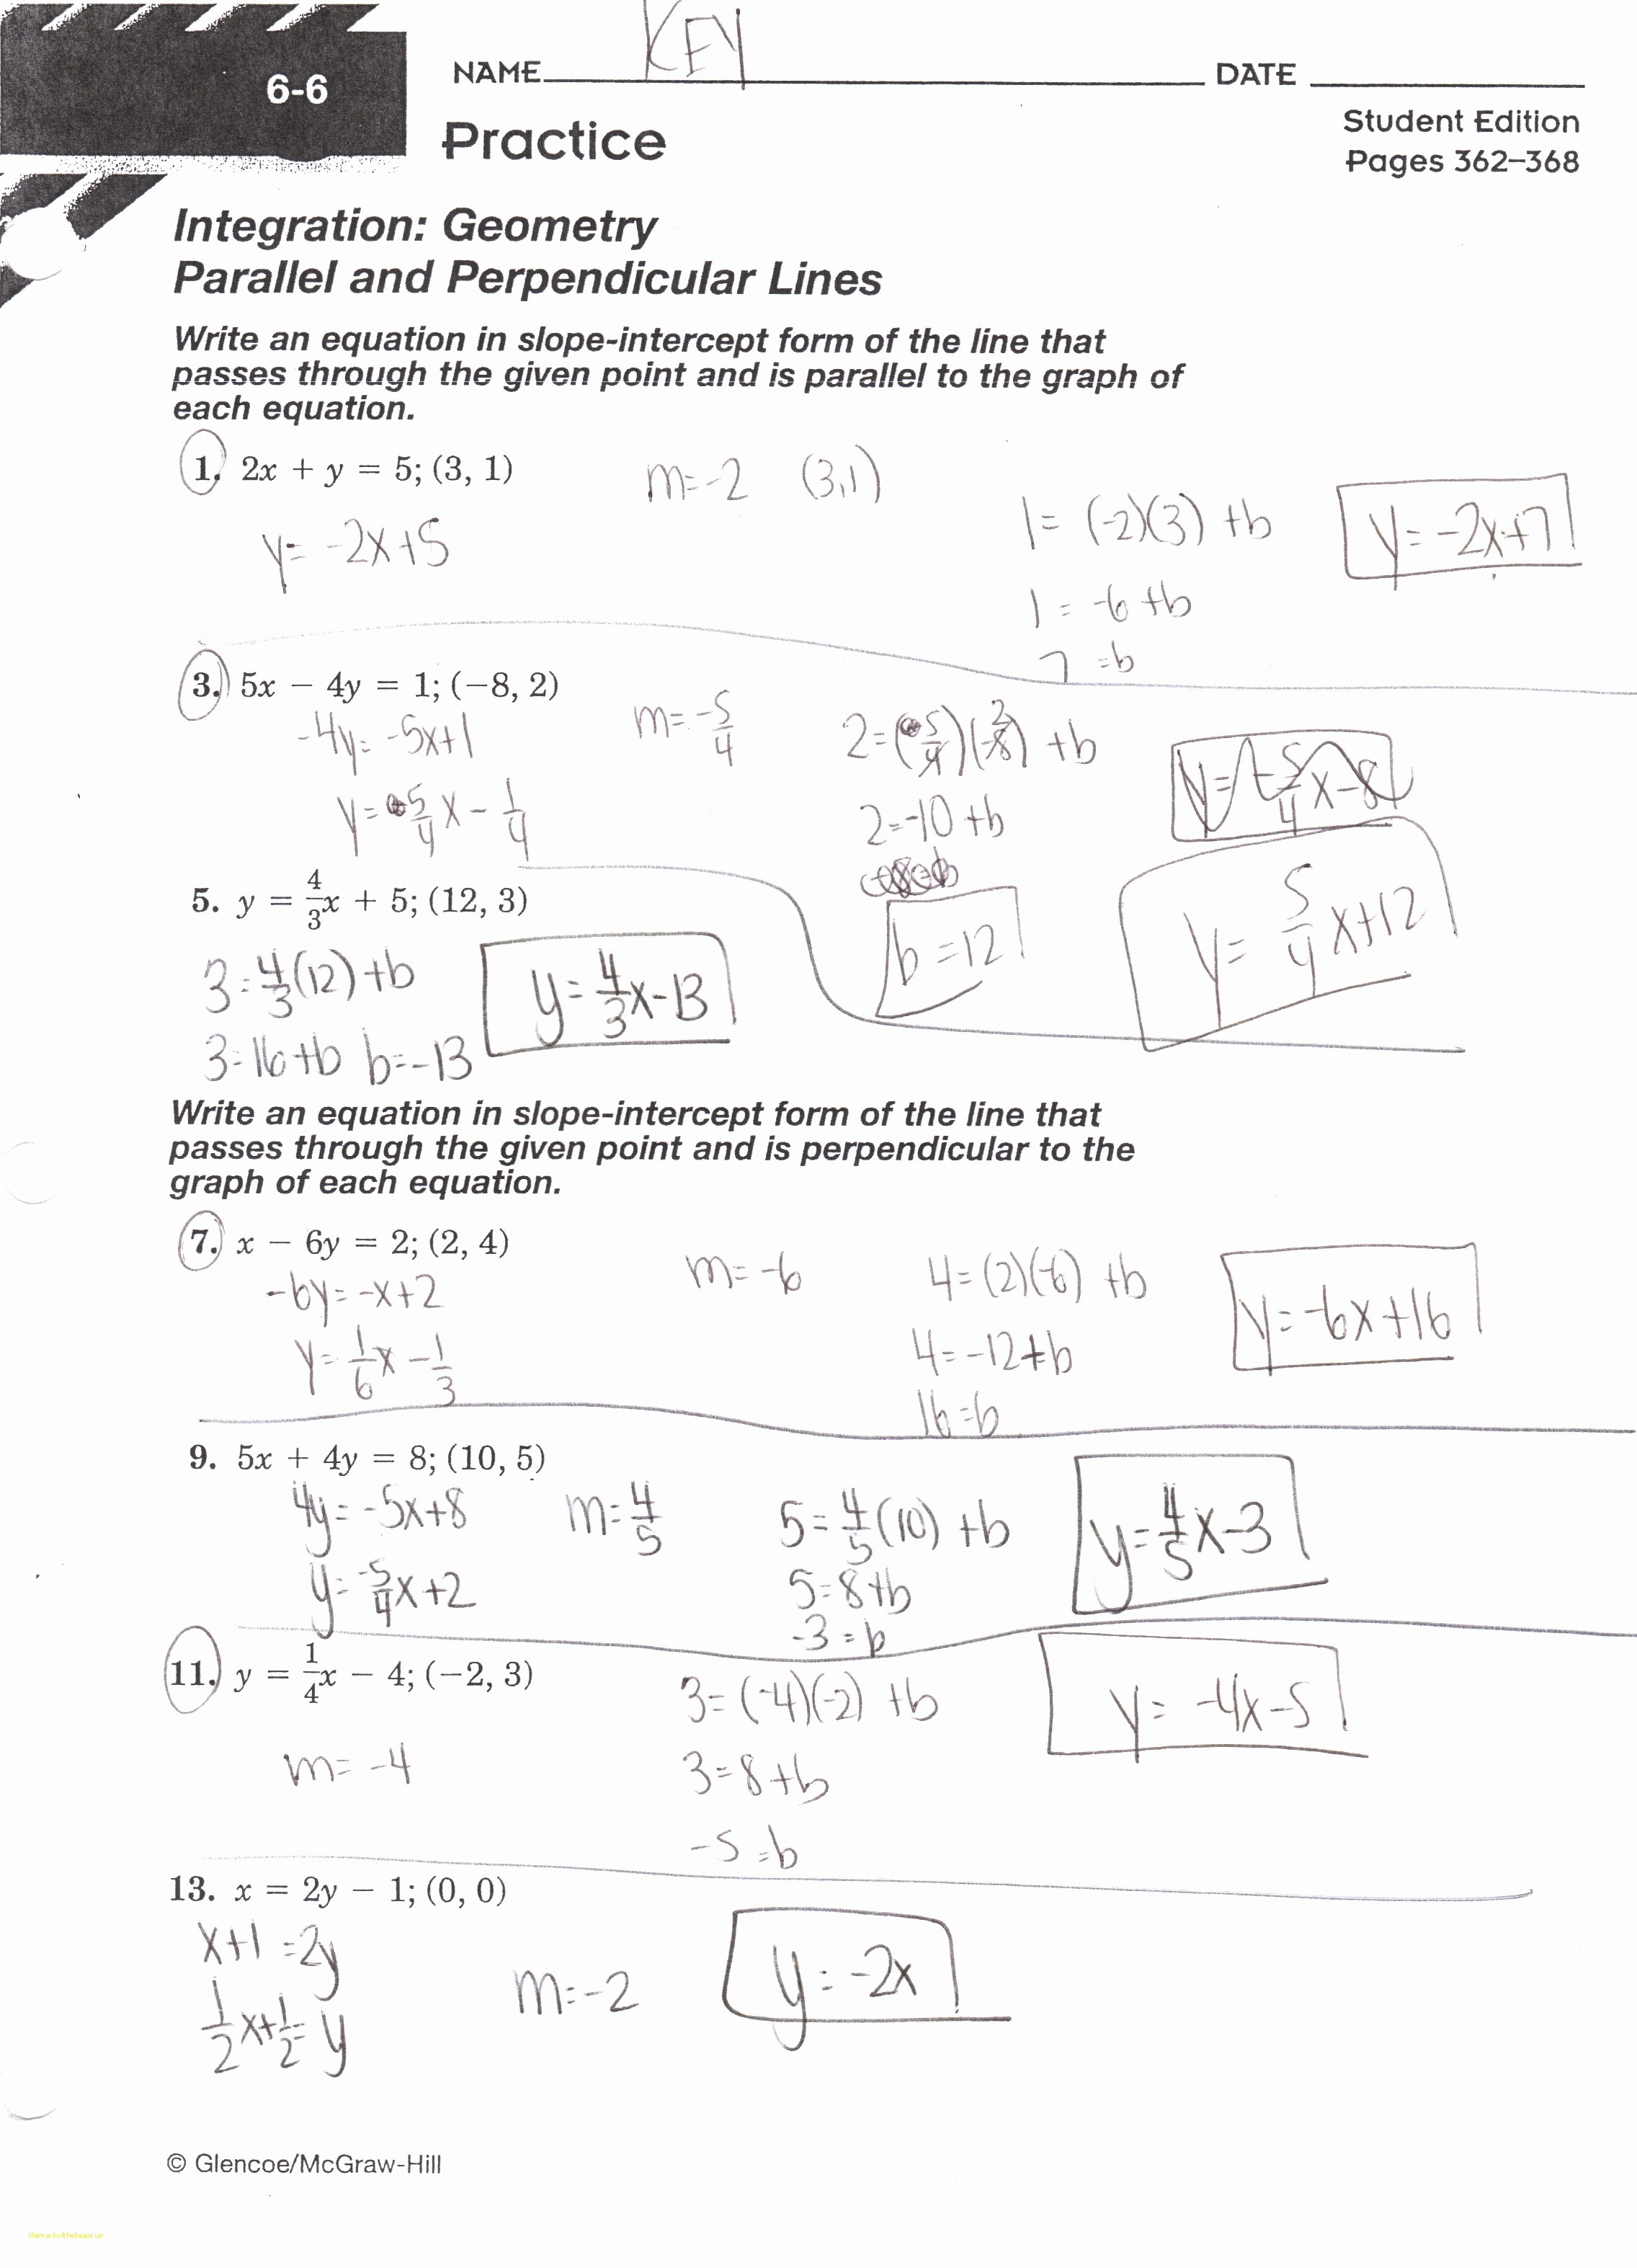 Linear Word Problem Worksheet Elegant Linear Equations Word Problems Worksheet with Answers